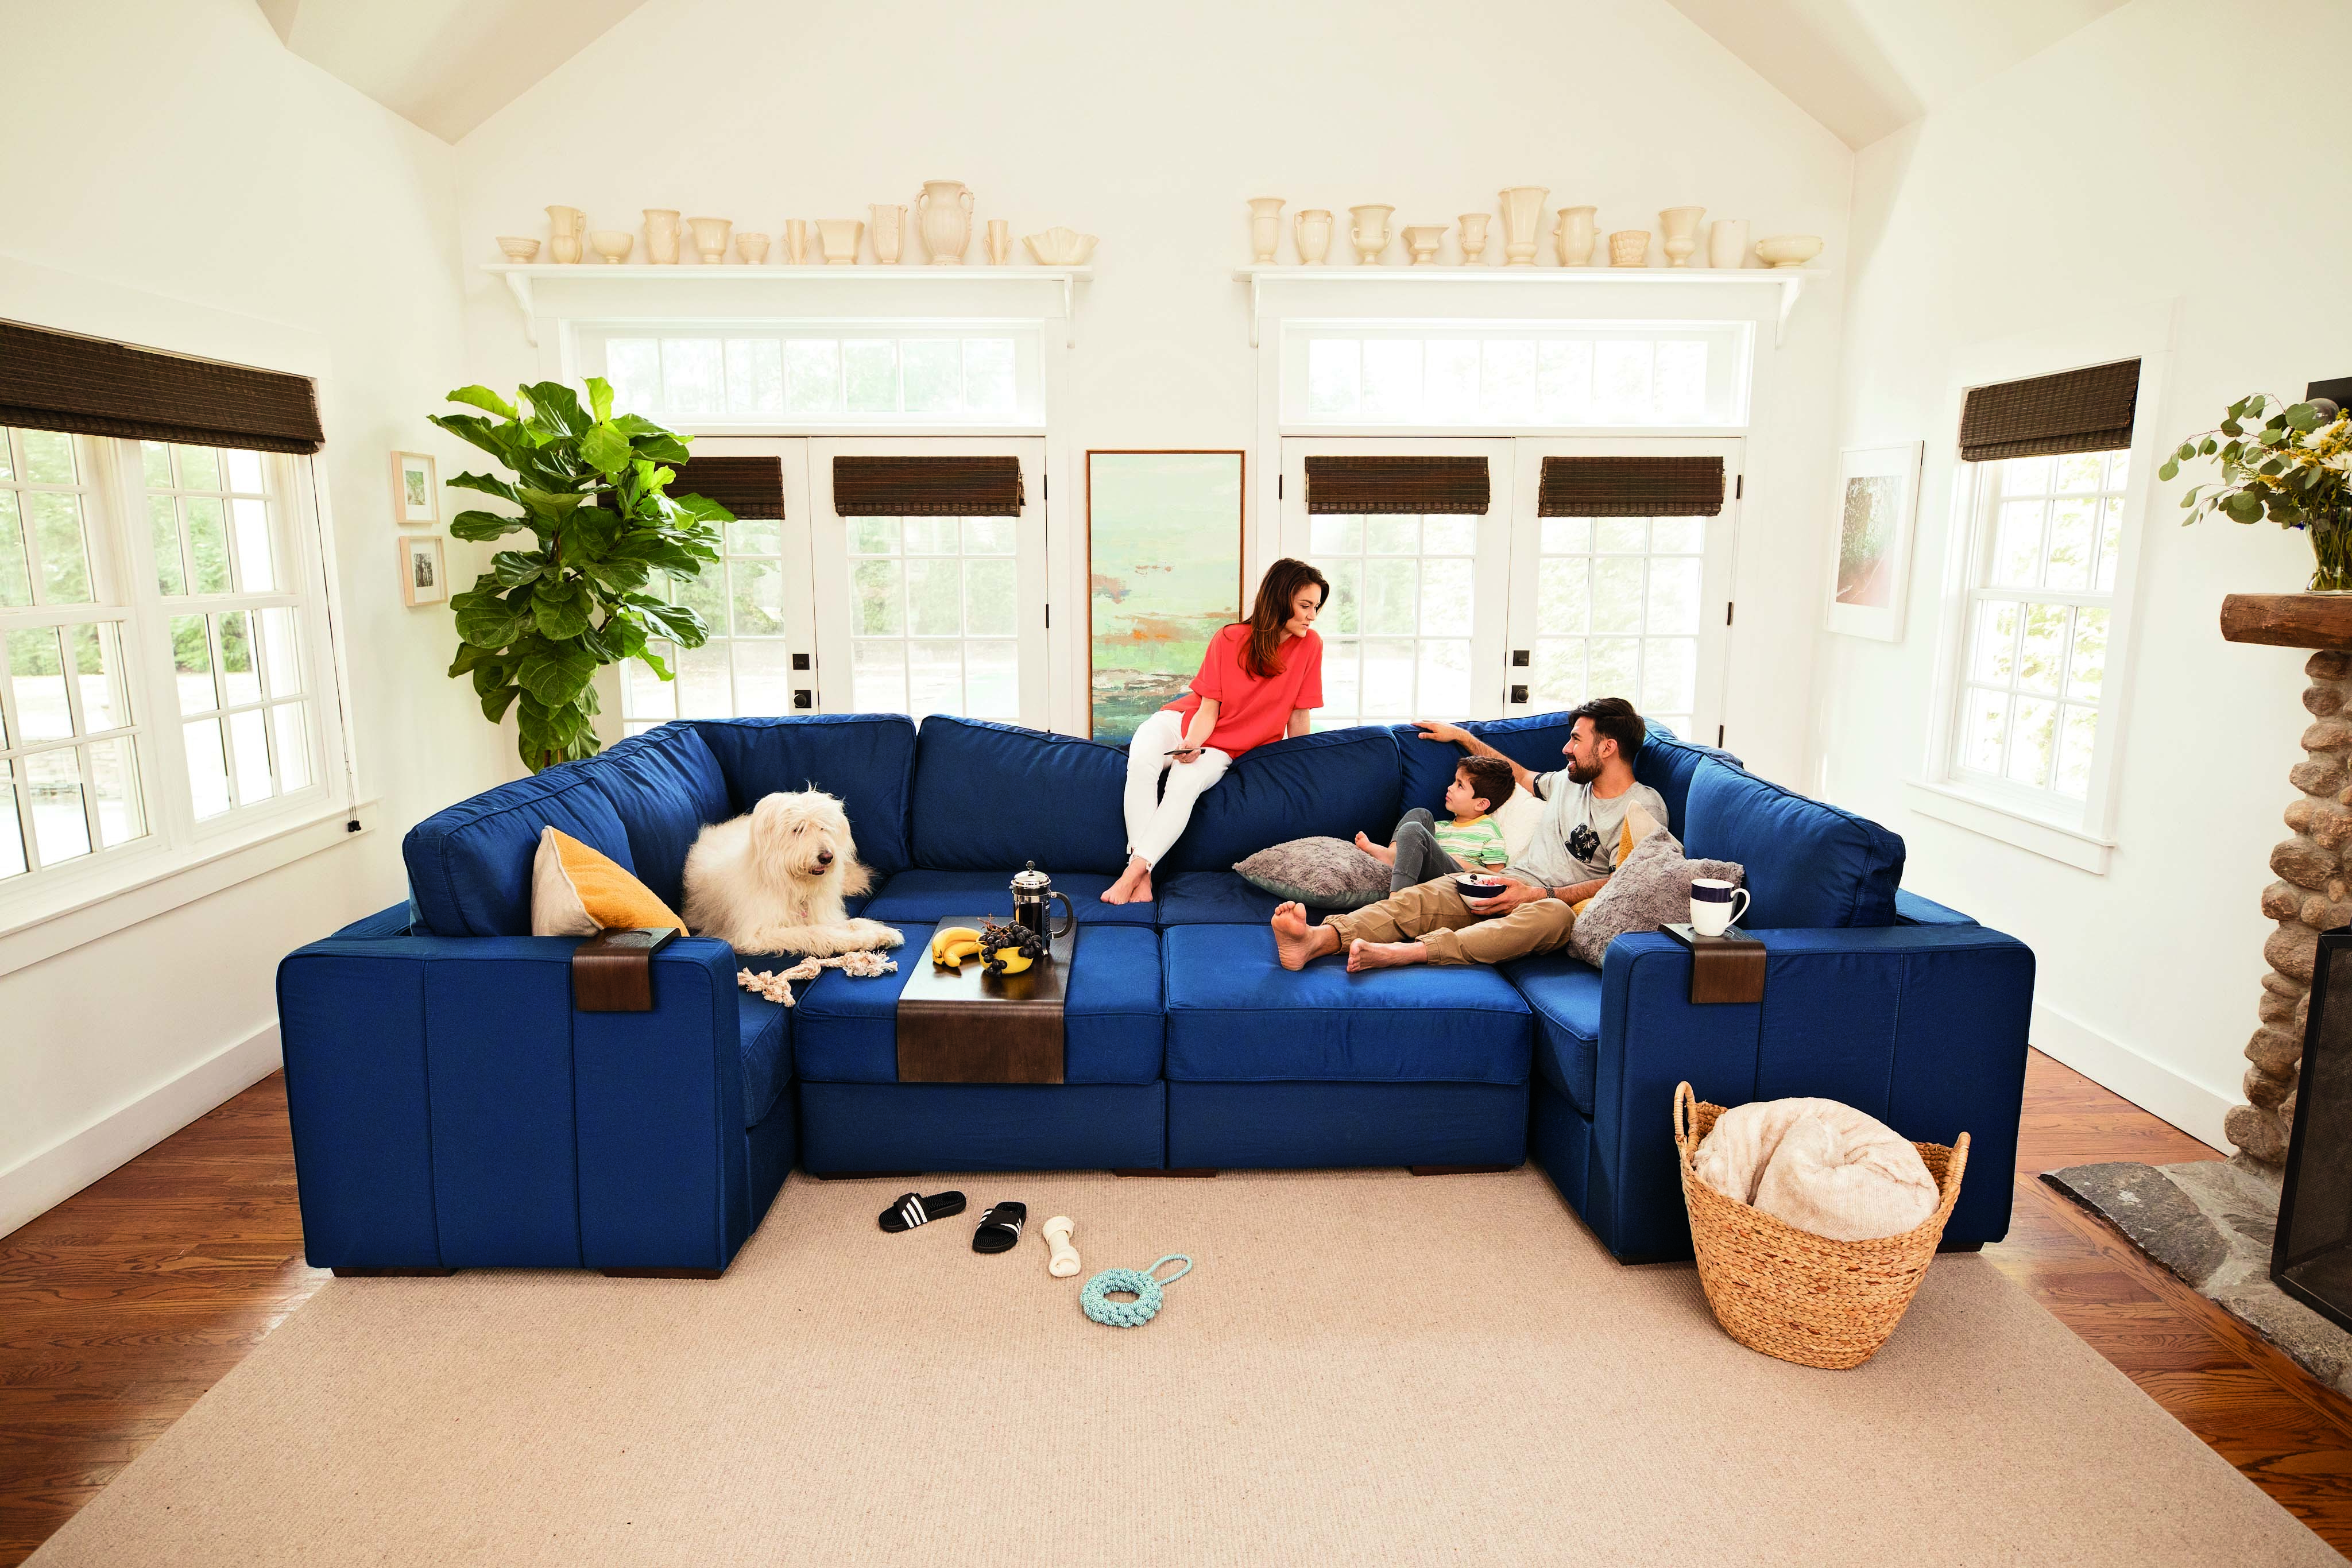 Investors show love for Lovesac in $56M IPO launch - Deseret